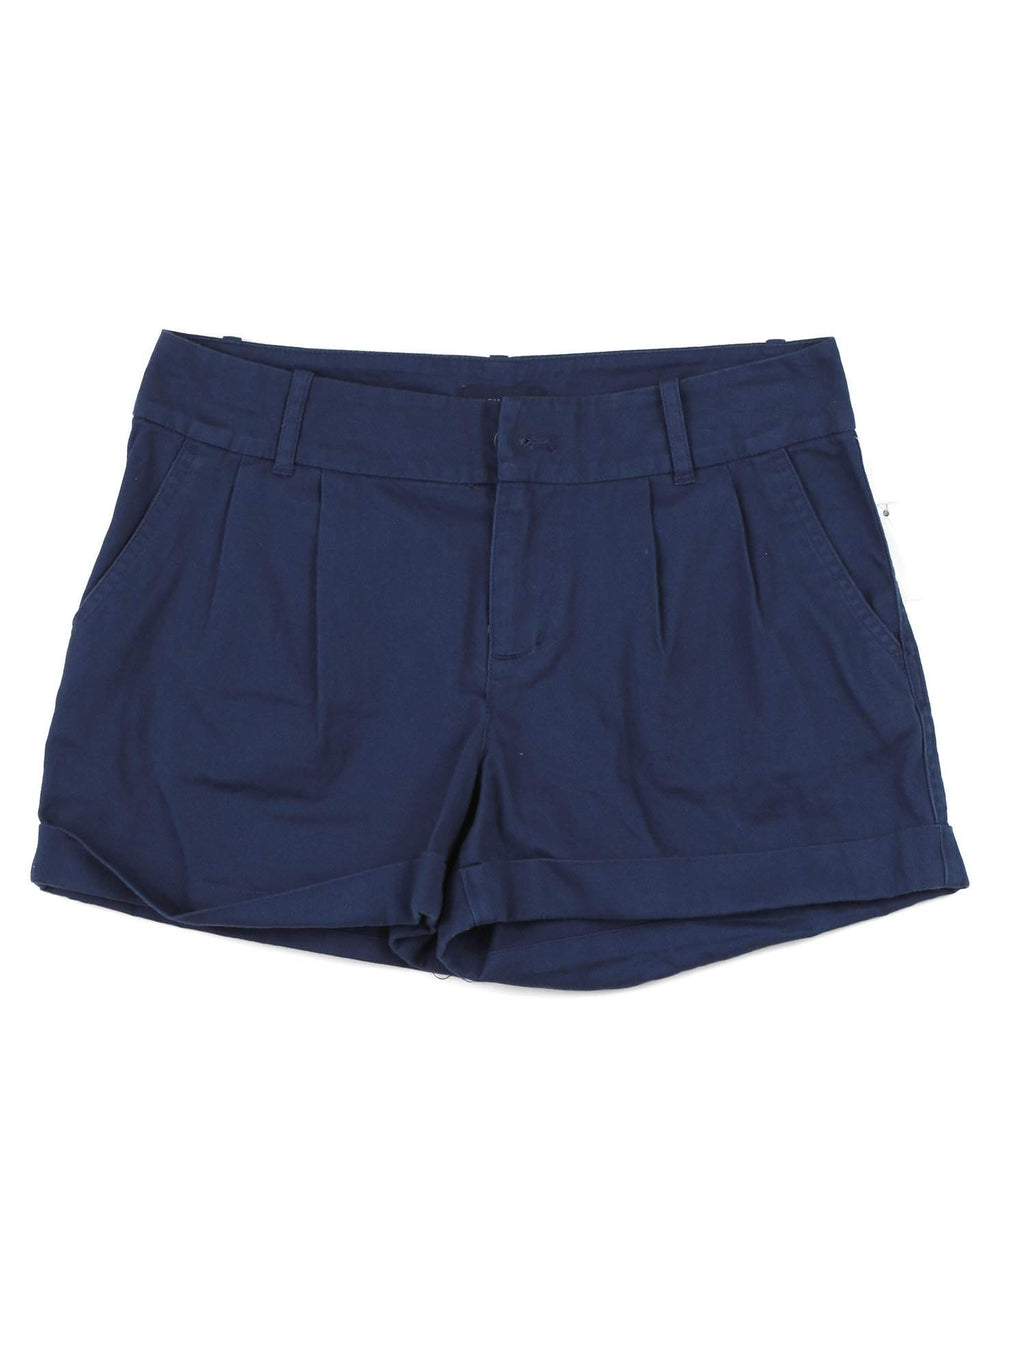 Ralph Lauren Girls Shorts by Ralph Lauren - My100Brands